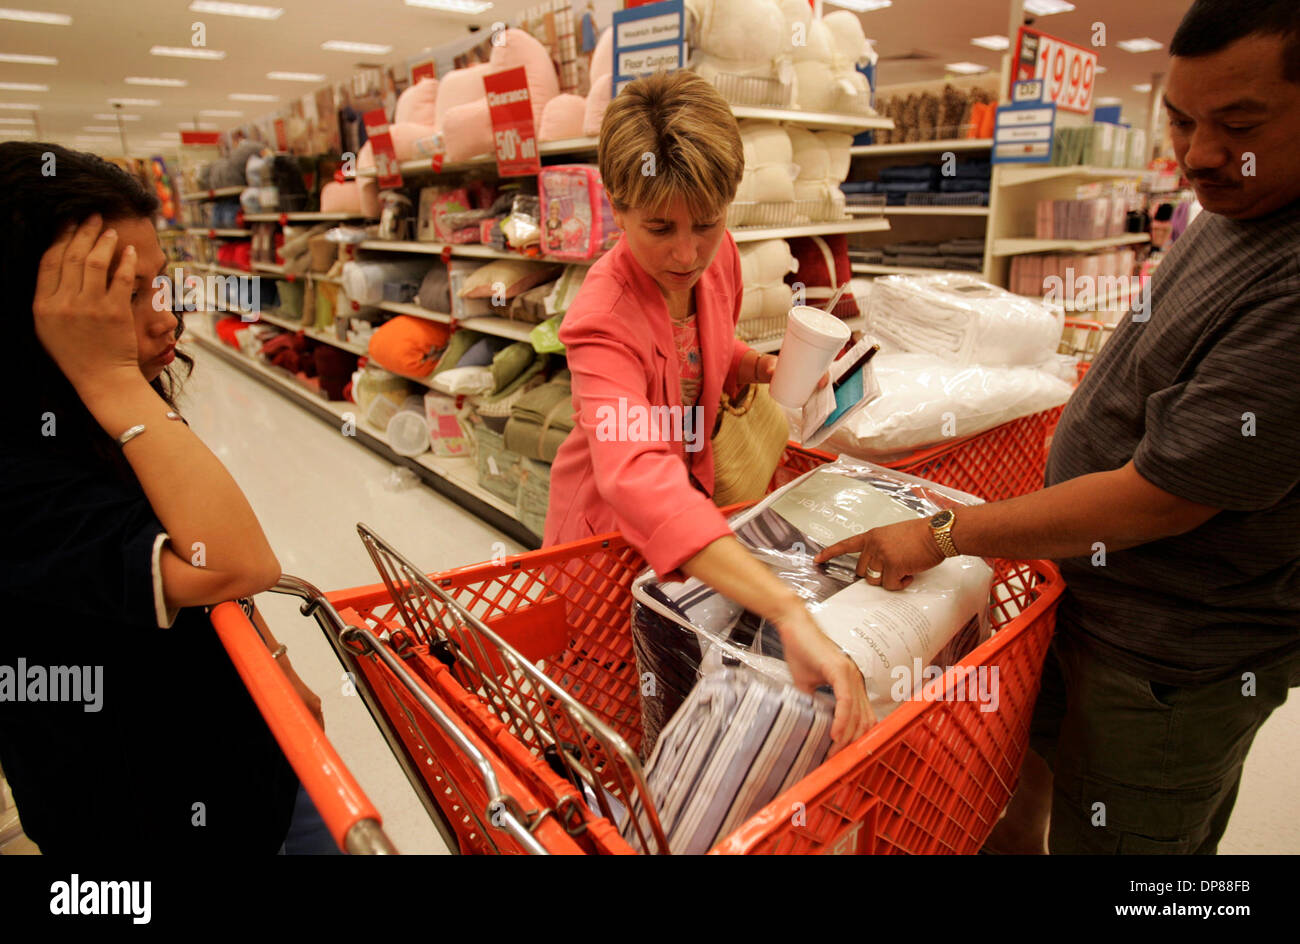 (Published 9/29/2005, B-1) Jean, left, and Julieto, right Apelacion (cq) are a bit overwhelmed at the choices as they shop Wednesday afternoon (9/28/2005) for linens with Pam Fleming, center, of the Church of St. Luke in El Cajon, which is sponsoring the former residents of New Orleans. The church bought the bedding and towels for the Apelacion family. Peggy Peattie photo - Stock Image